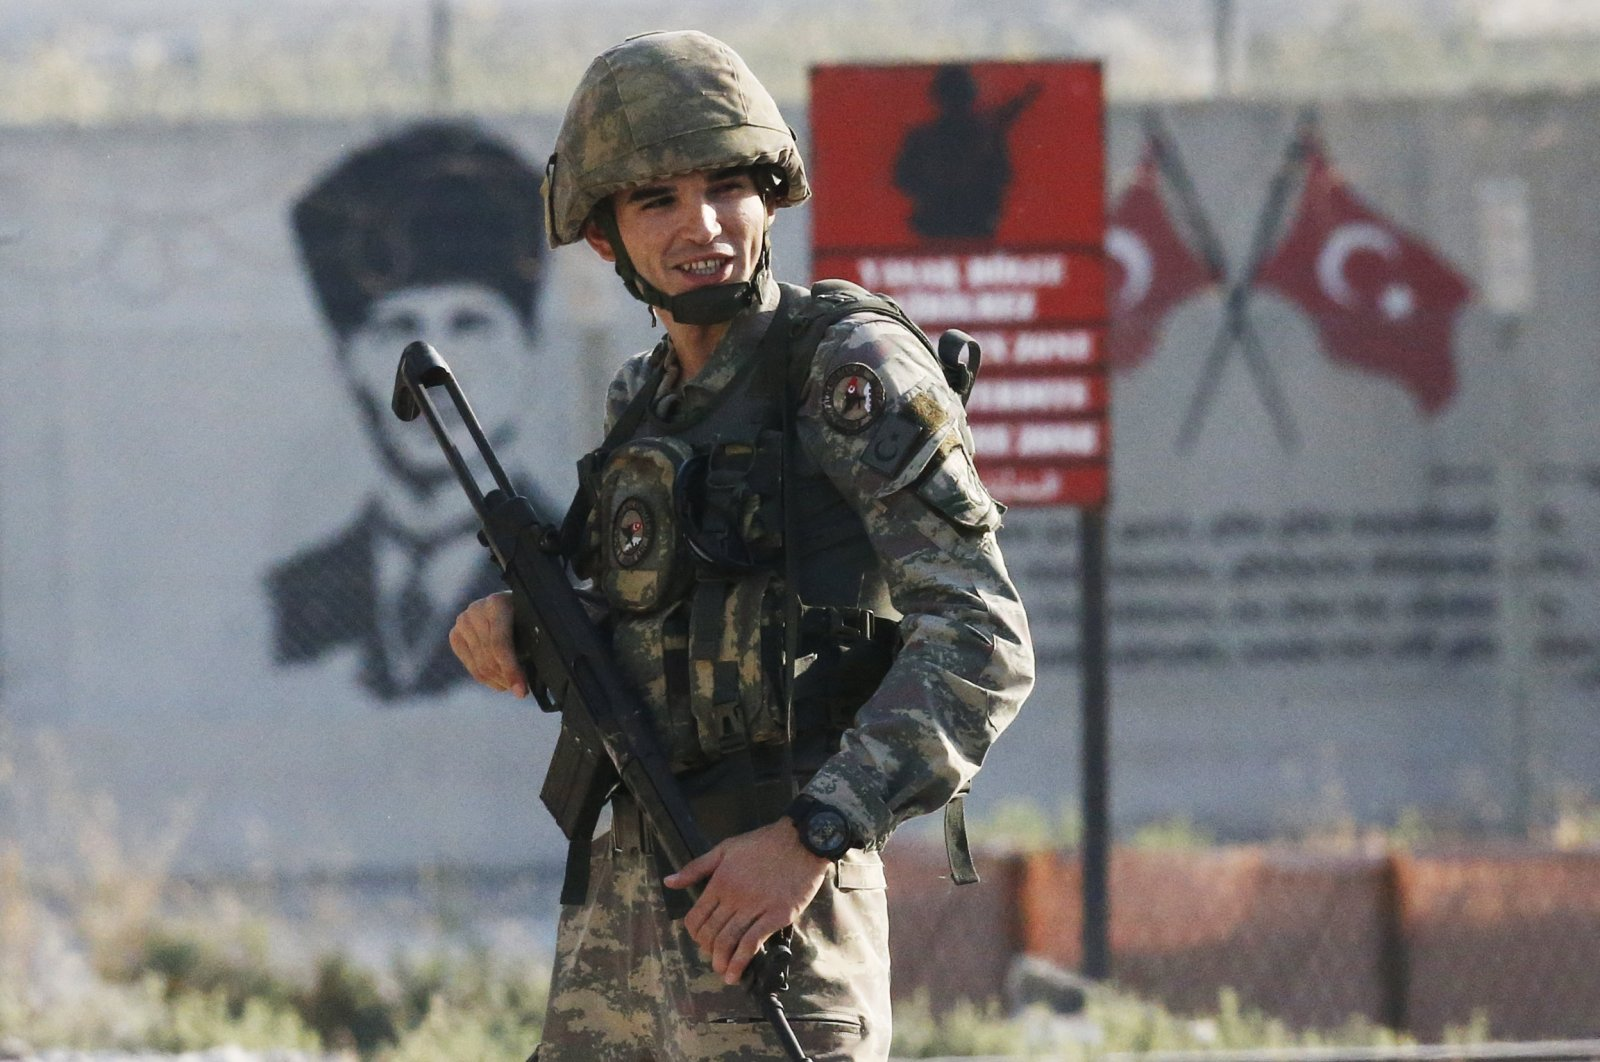 Shortly after the Turkey's Operation Peace Spring operation inside Syria had started, a Turkish soldier stands at the border with Syria in Akçakale, Şanlıurfa province, Oct. 9, 2019. (AP Photo)